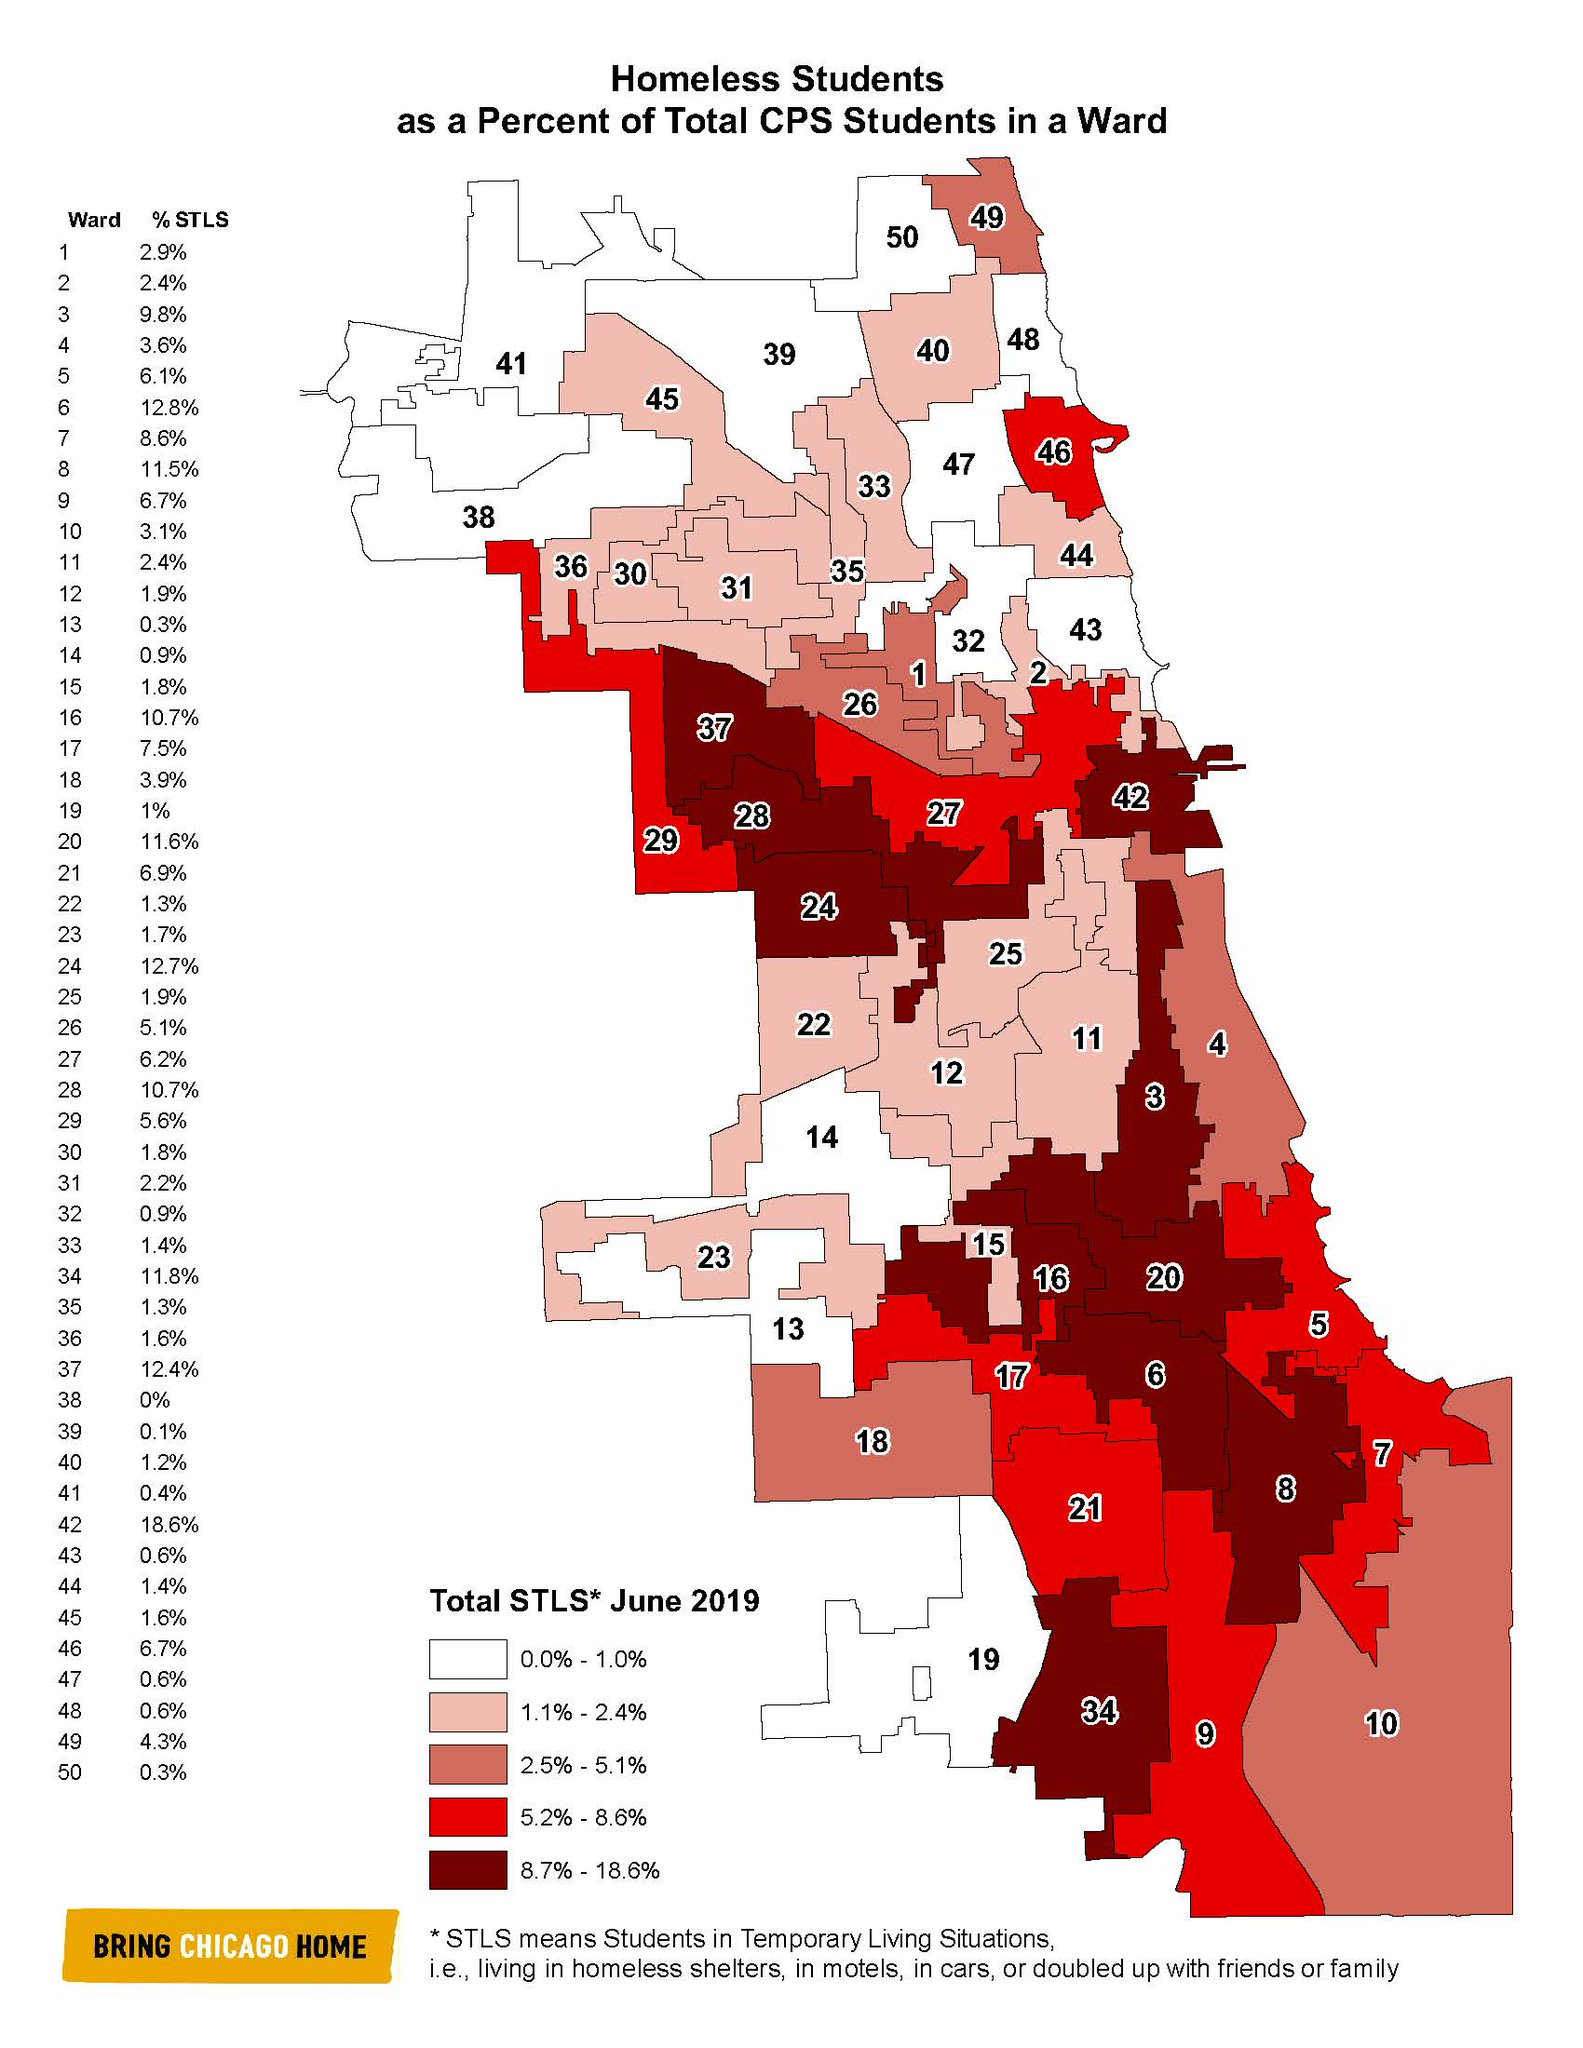 Nearly 16,500 Chicago Public Schools students experienced homelessness last year, according to @ChiHomeless. This map from CCH shows a ward-by-ward breakdown of student homelessness across the city. TNM's Phoenix Hall provides supportive housing for homeless high schoolers. https://t.co/UeHtFl3Mlu